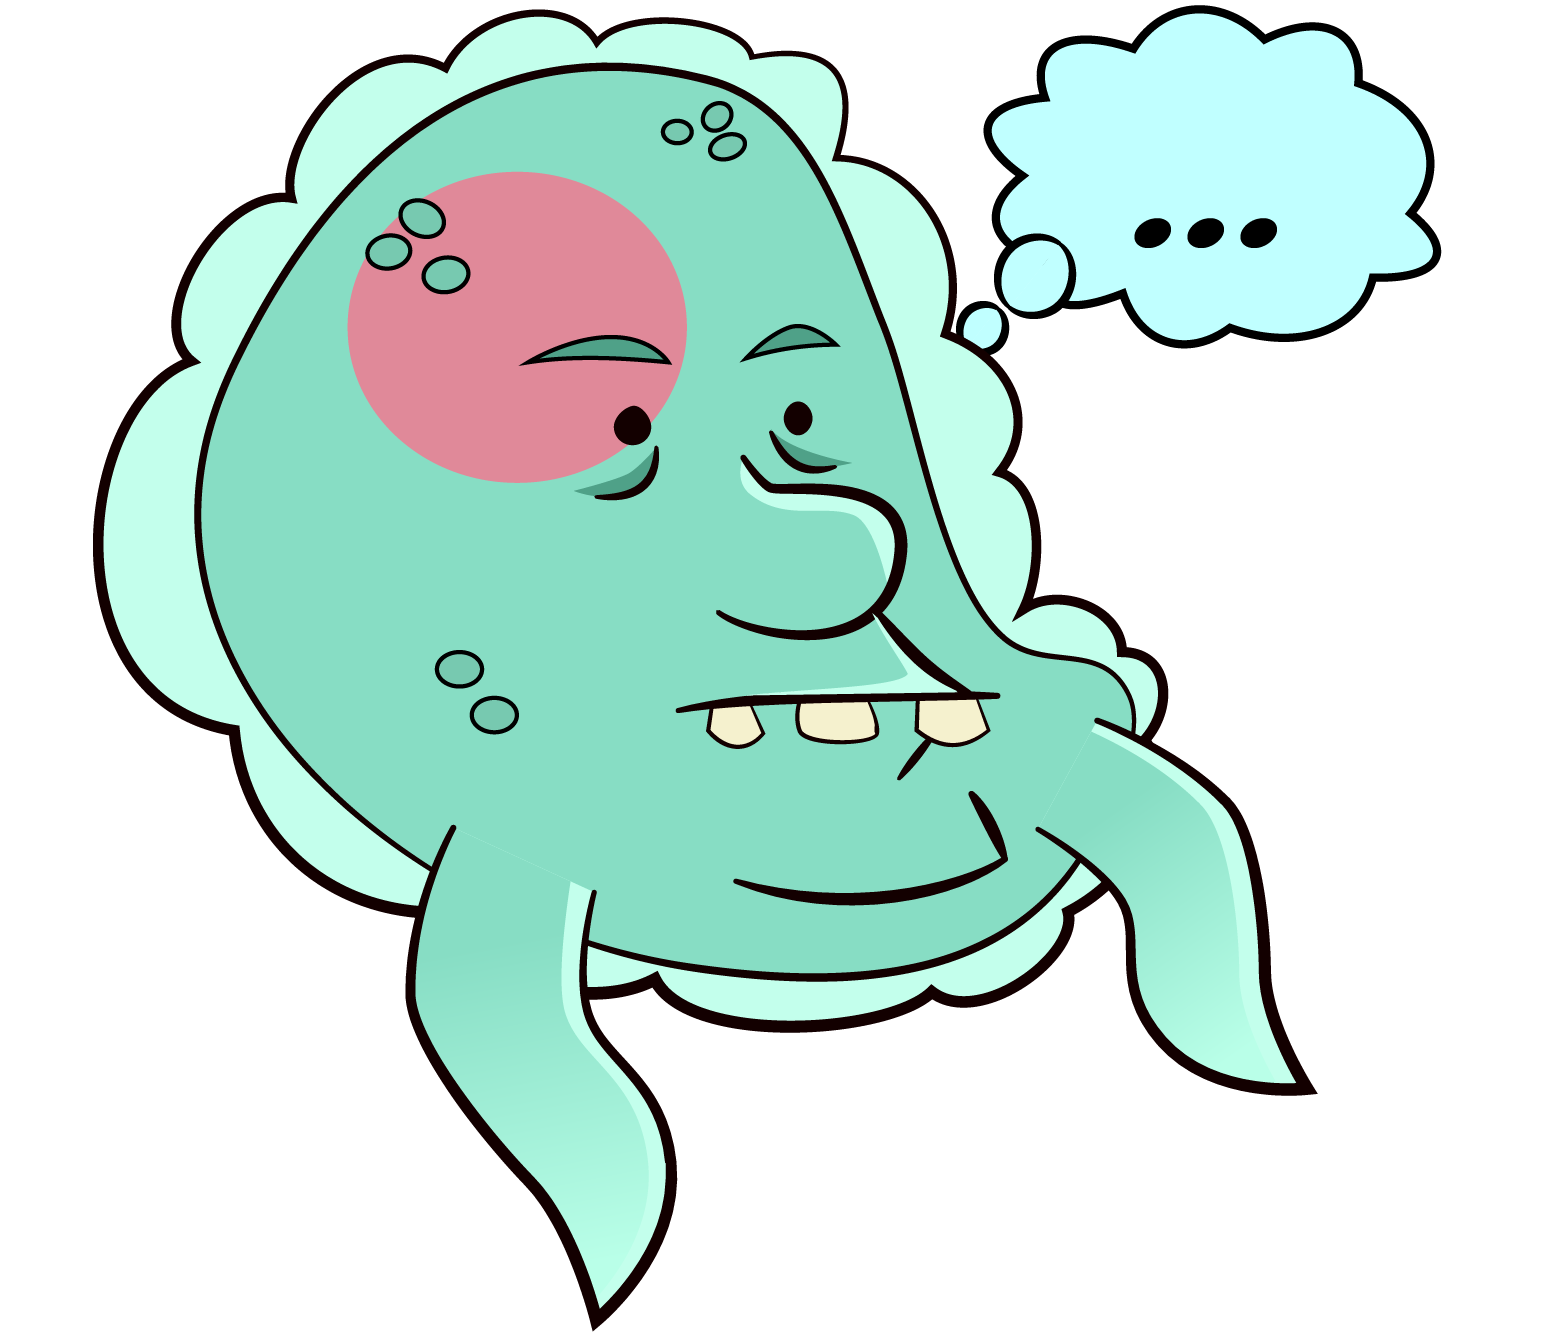 tinyocean_stickers_plankton_set1_final-40.png